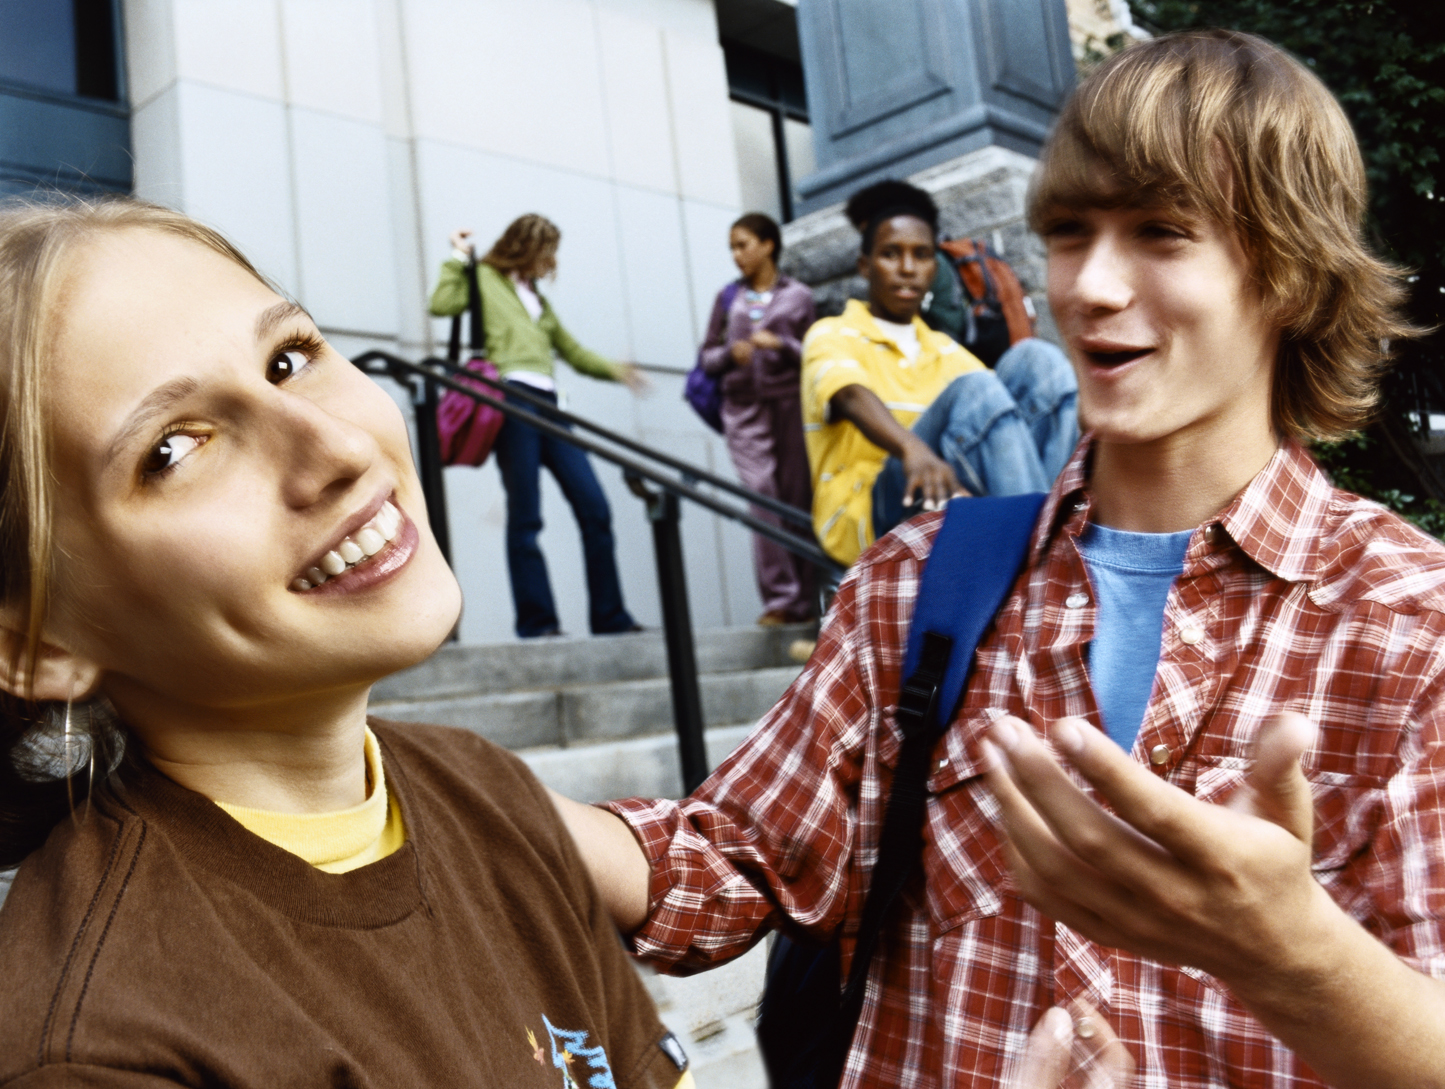 girl and boy laughing in front of school